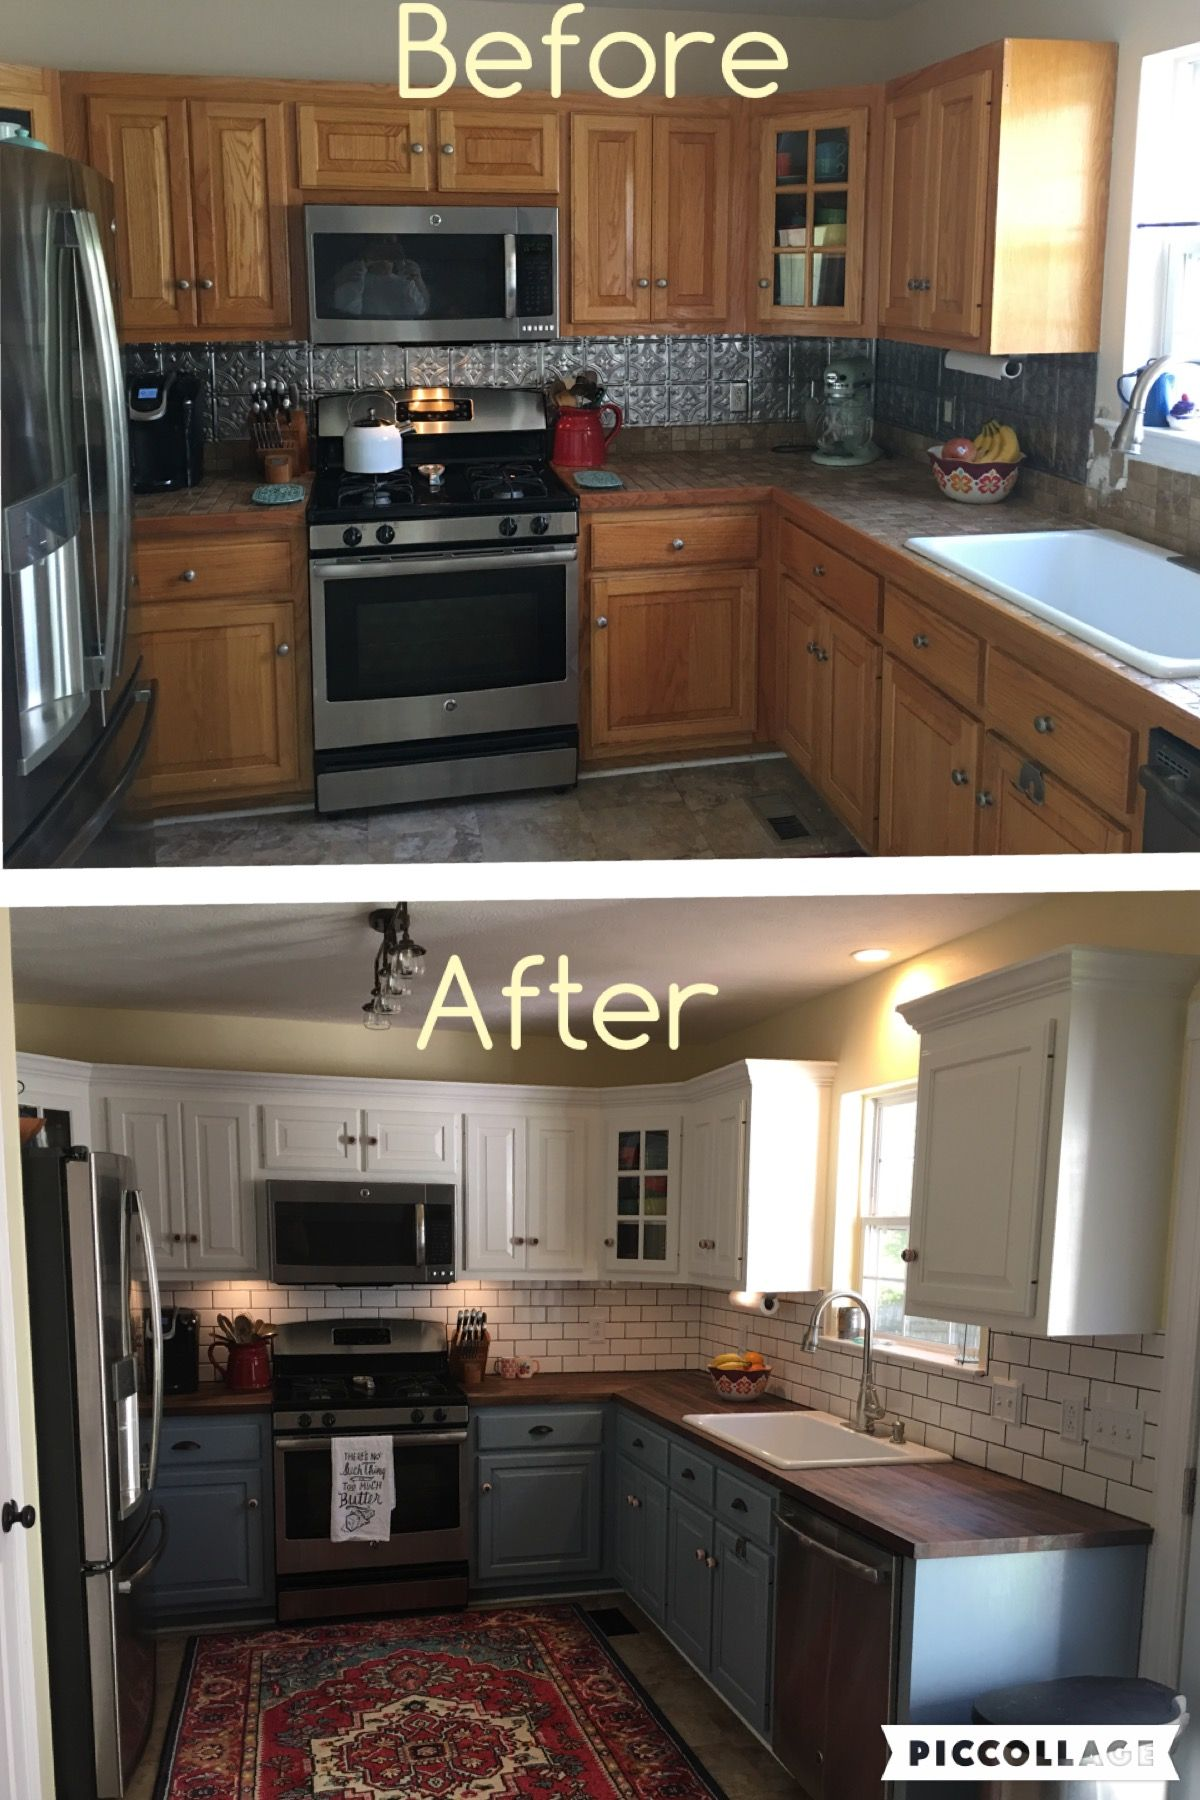 Kitchen Updates two toned cabinets. valspar cabinet enamel from lowes = successful